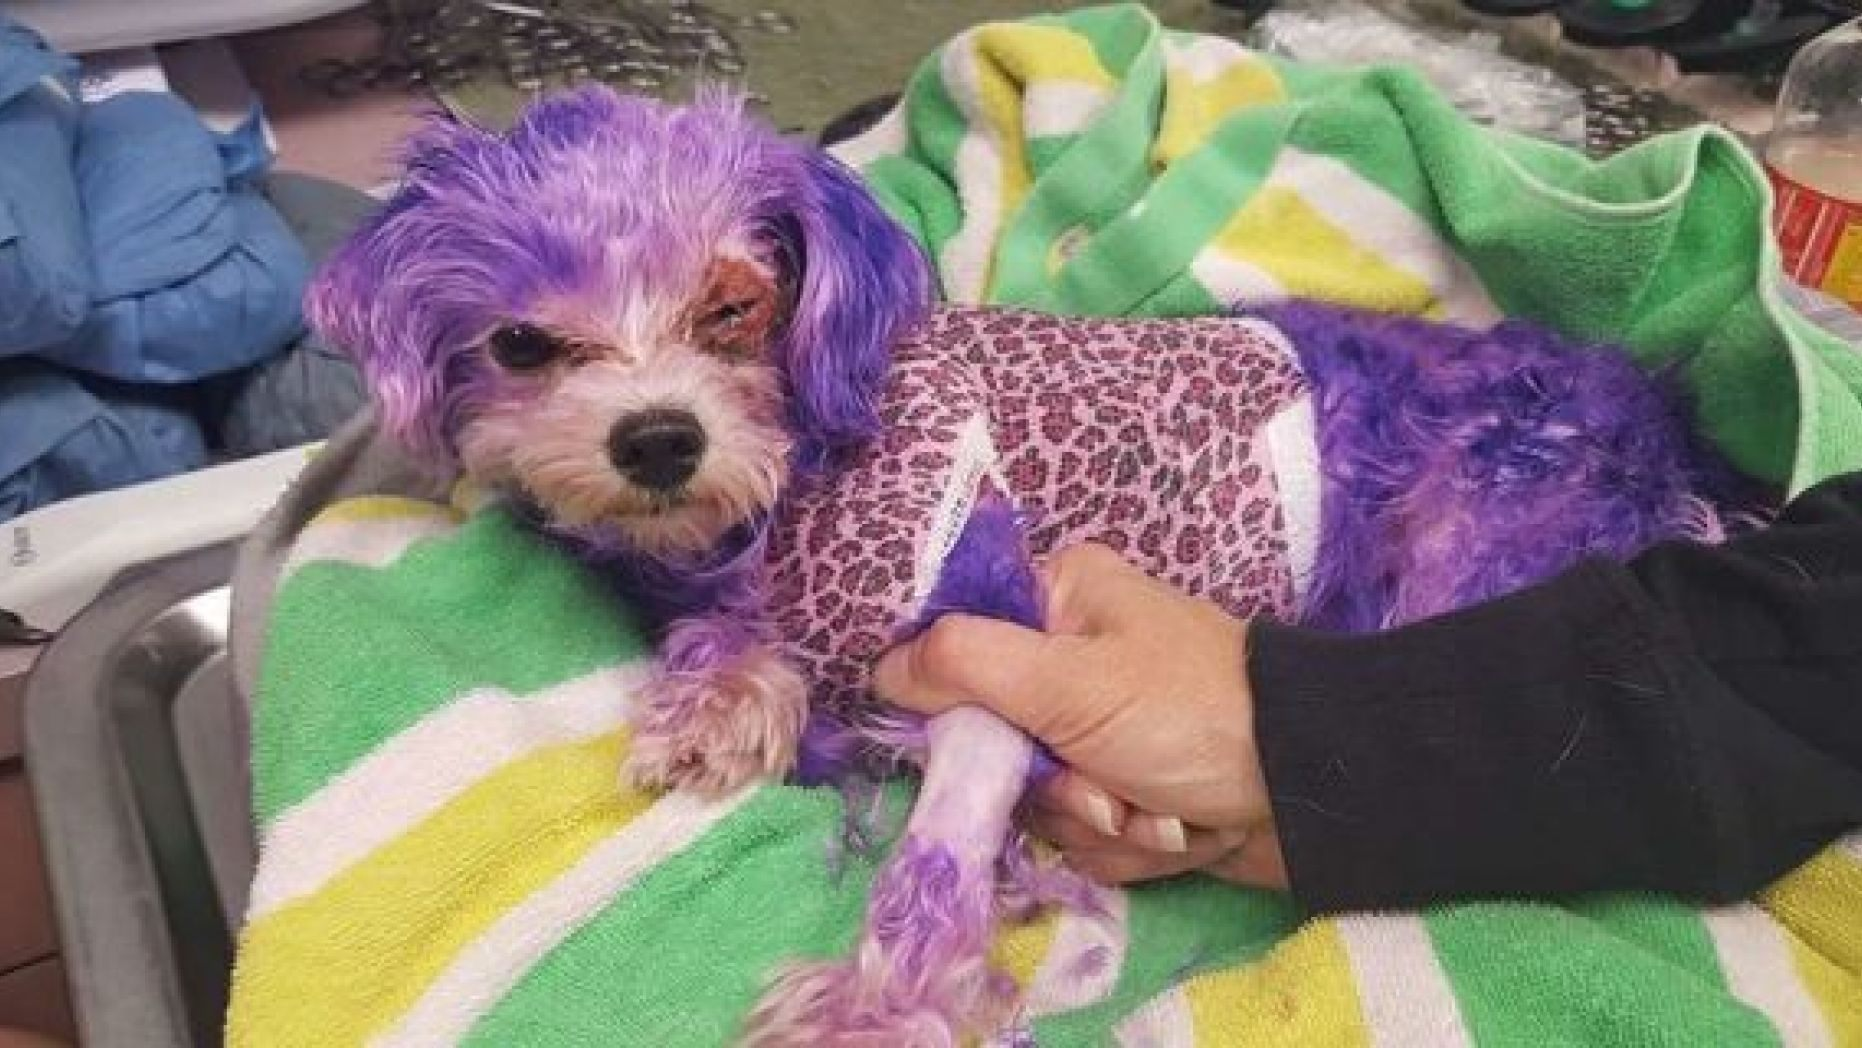 A dog named Violet nearly died last year after being dyed purple.